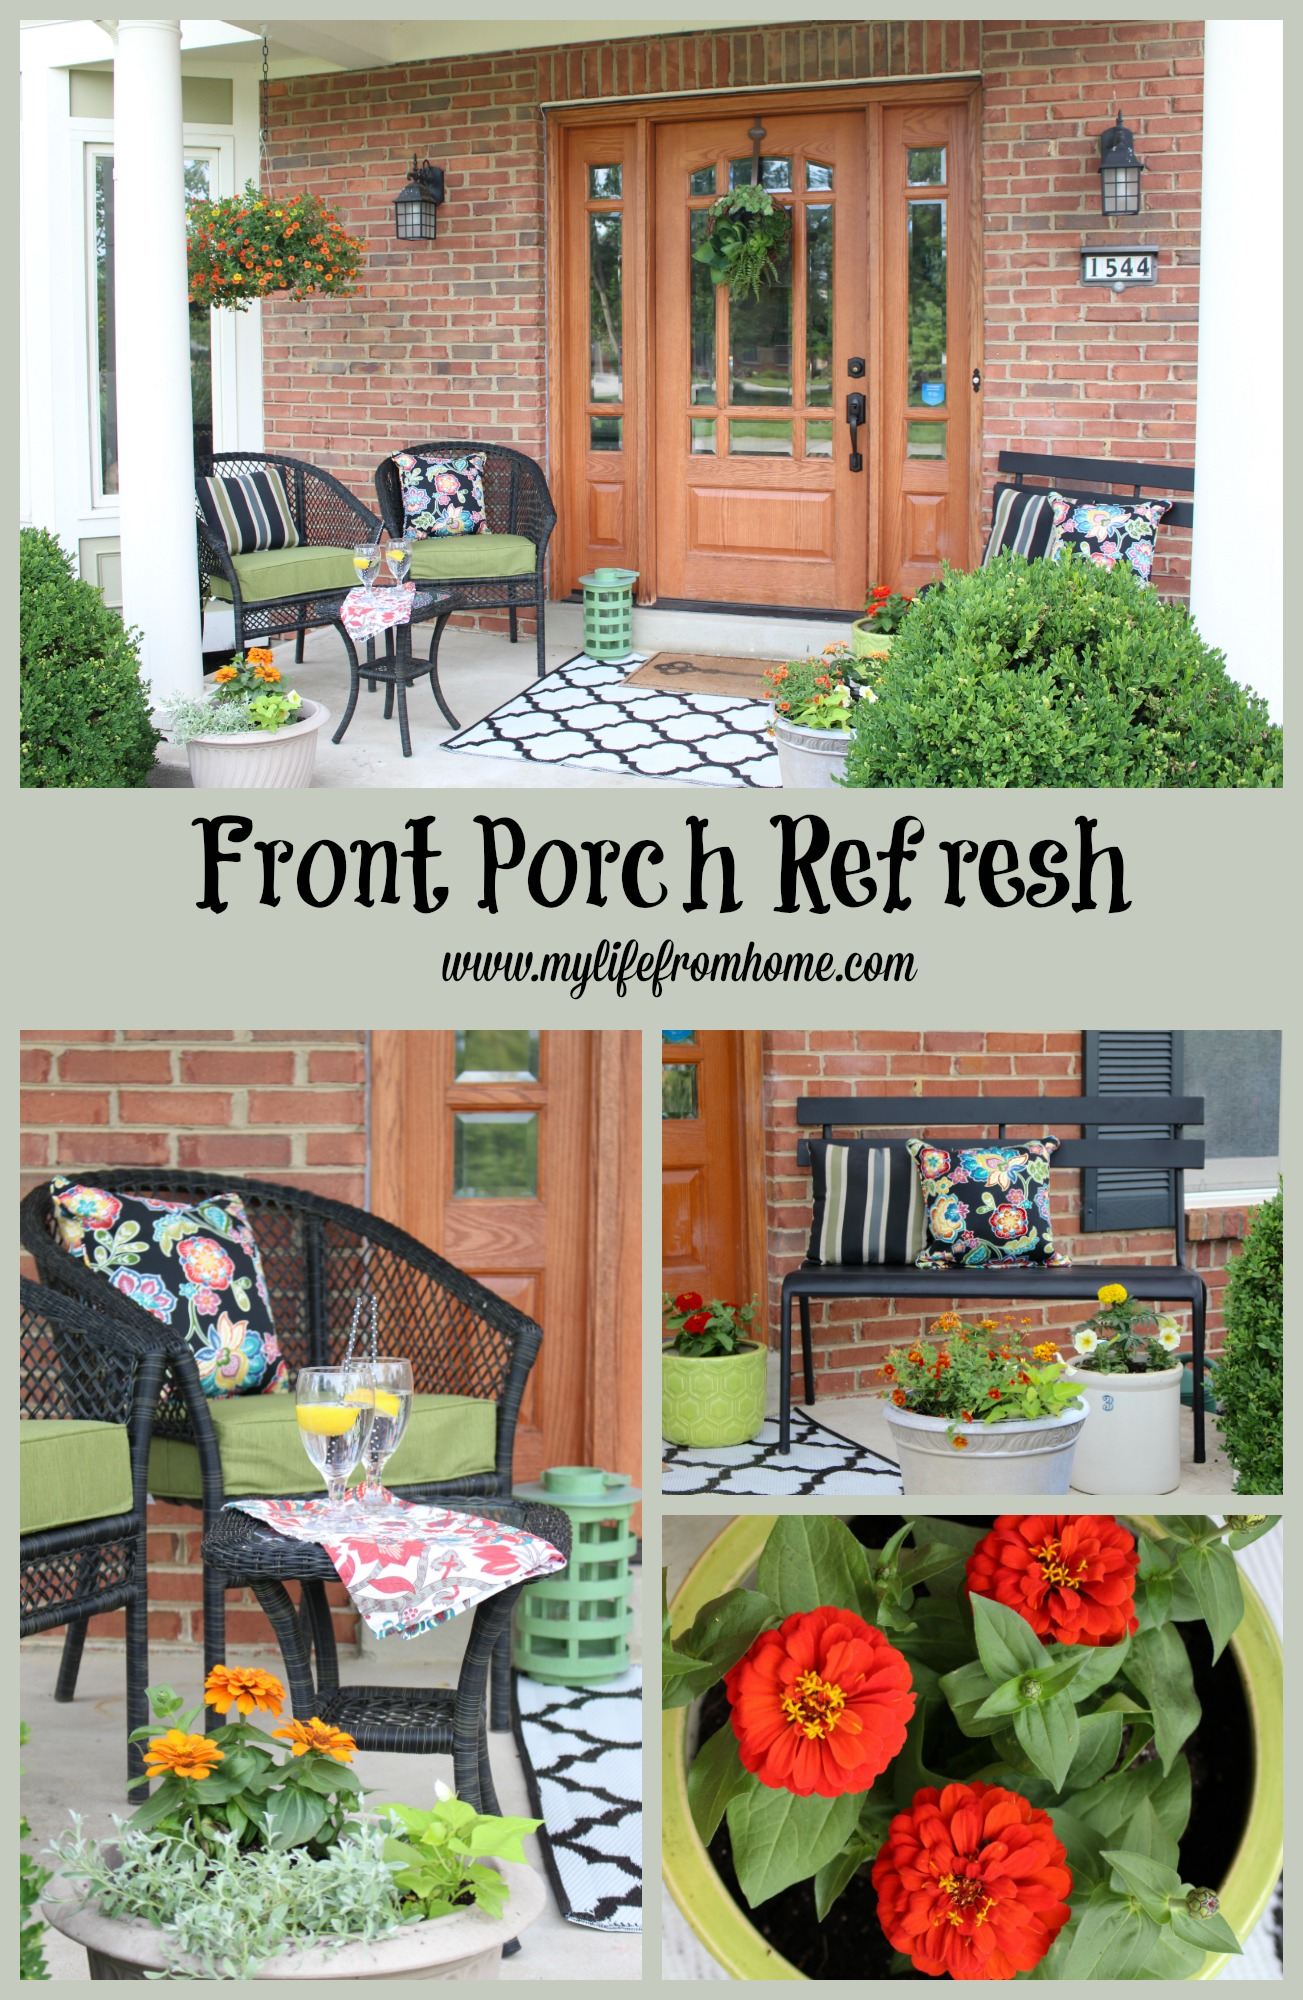 front-porch-refresh-by-www-mylifefromhome-com